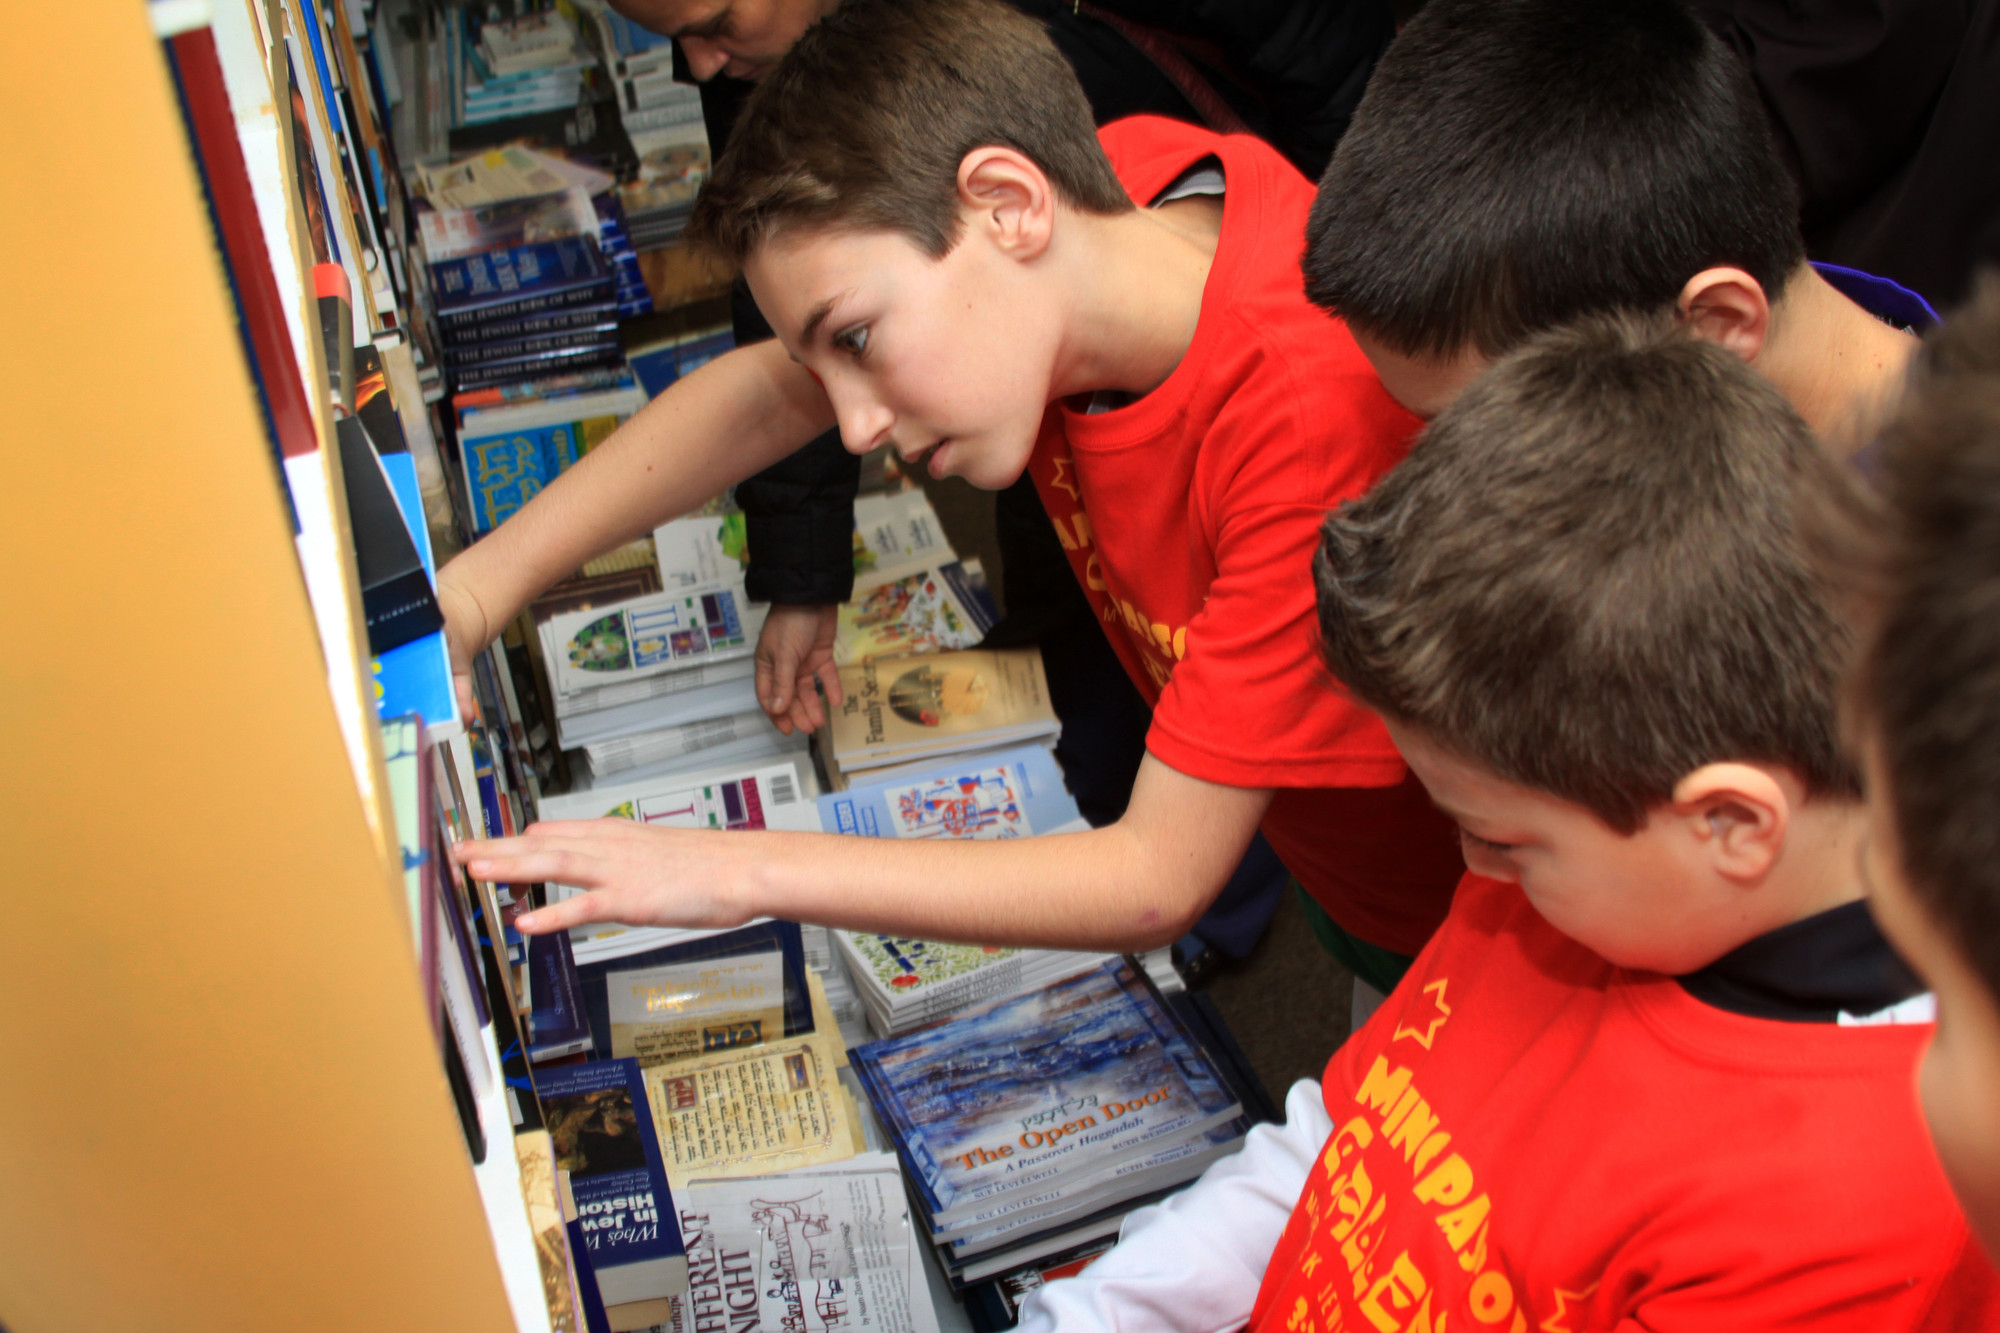 Josh Rosenberg, 12, searched bookshelves at Yussel's Place in Merrick for a copy of MJC Rabbi Charles Klein's book.